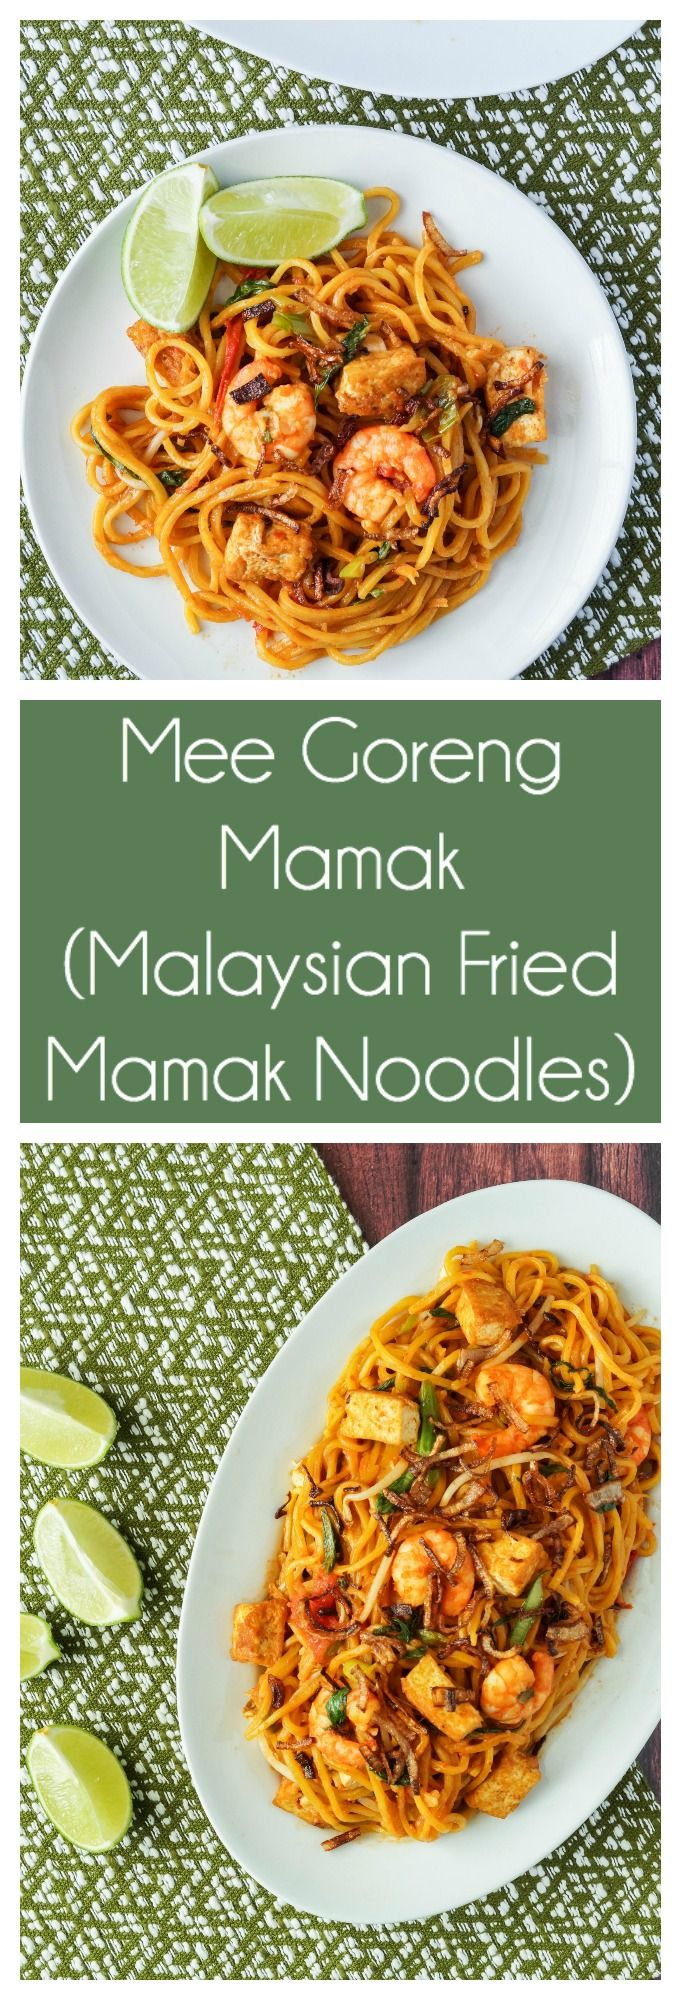 Malaysia: Recipes from a Family Kitchen, written by Ping Coombes, features the incredibly flavorful and diverse cuisine of Malaysia with over 100 family-style recipes. Highlights include Lor Bak (F…